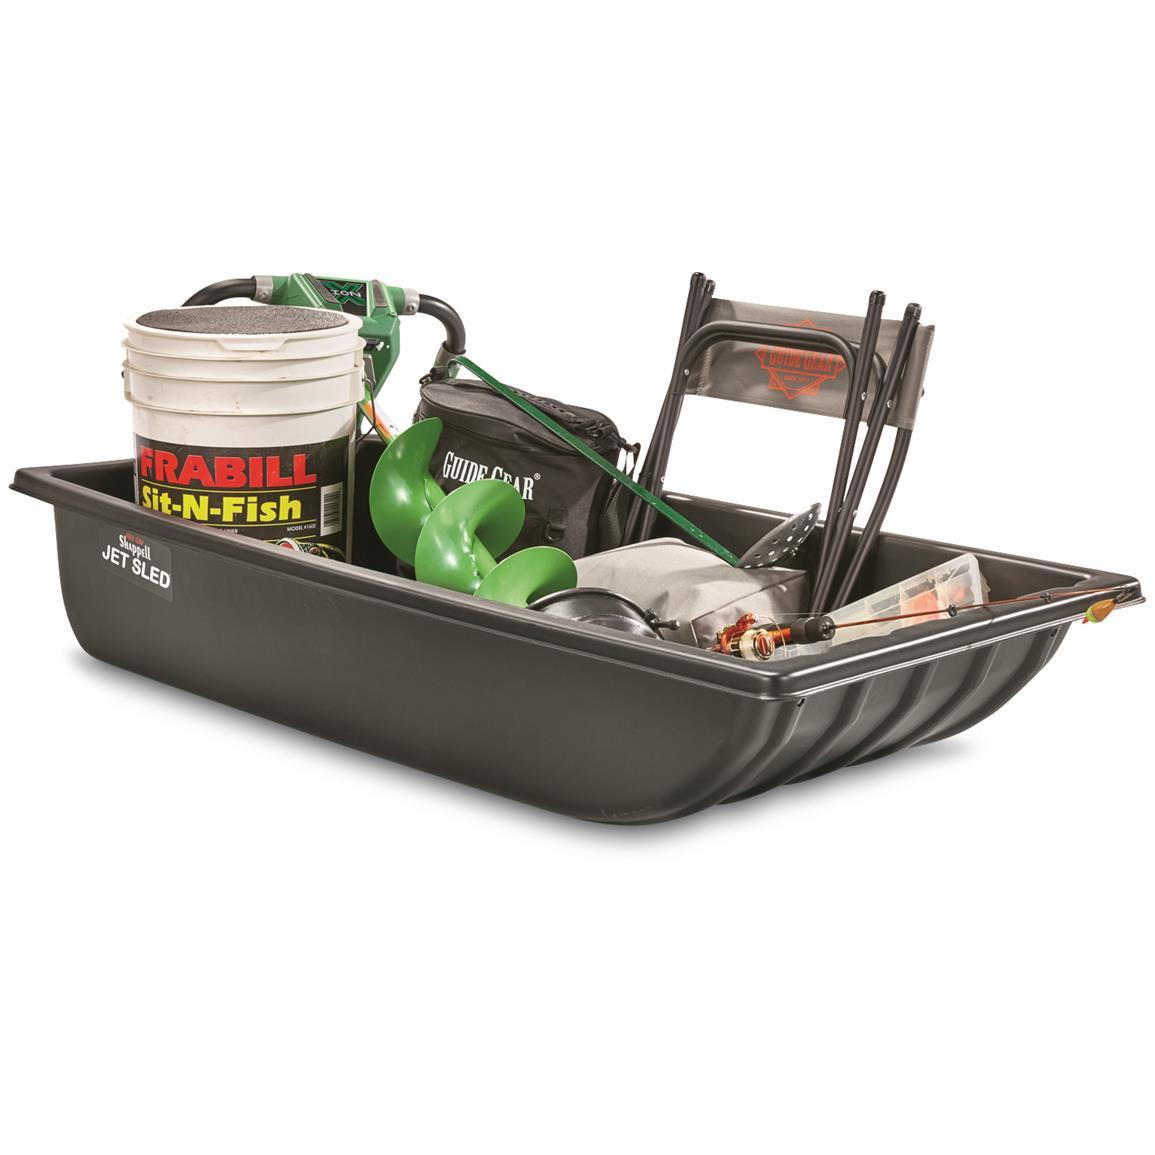 A sled to carry items when working in the cold